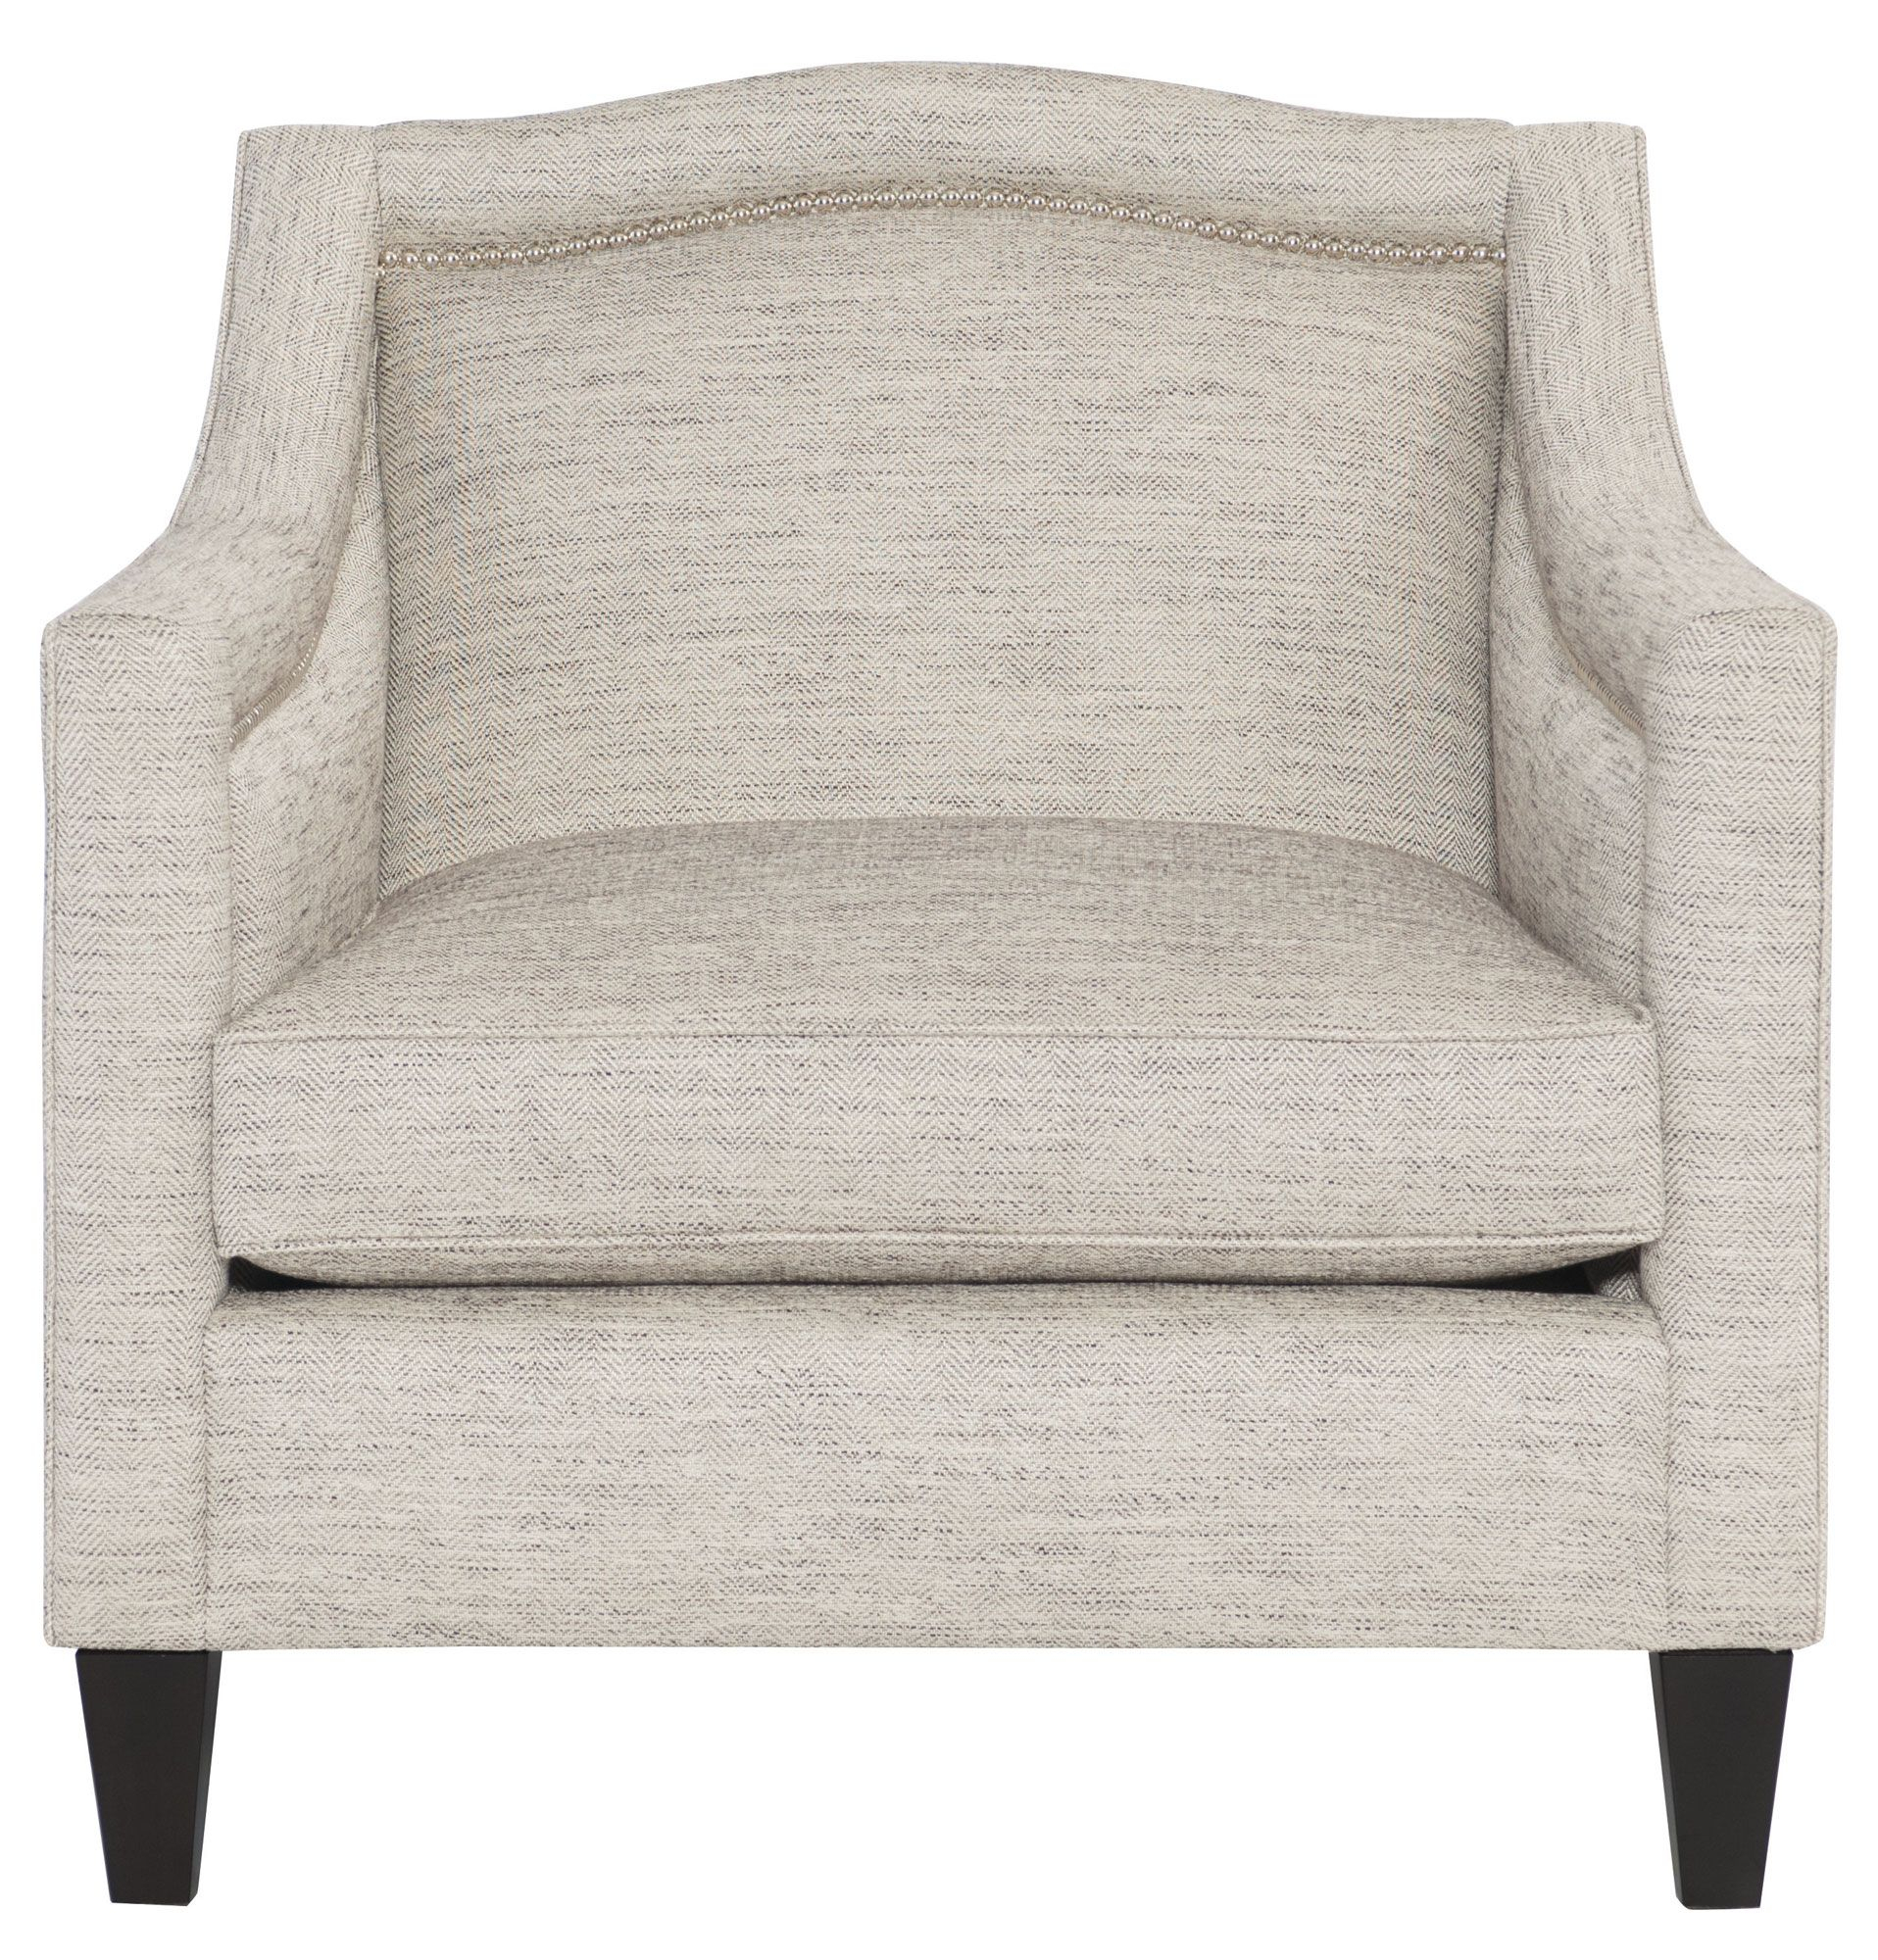 W: 32 1/2 D: 33 H: 33 1/2 Sh: 16 1/2 Ah: 24 Sd: 22 Ba: 25 In Aidan Ii Swivel Accent Chairs (View 21 of 25)